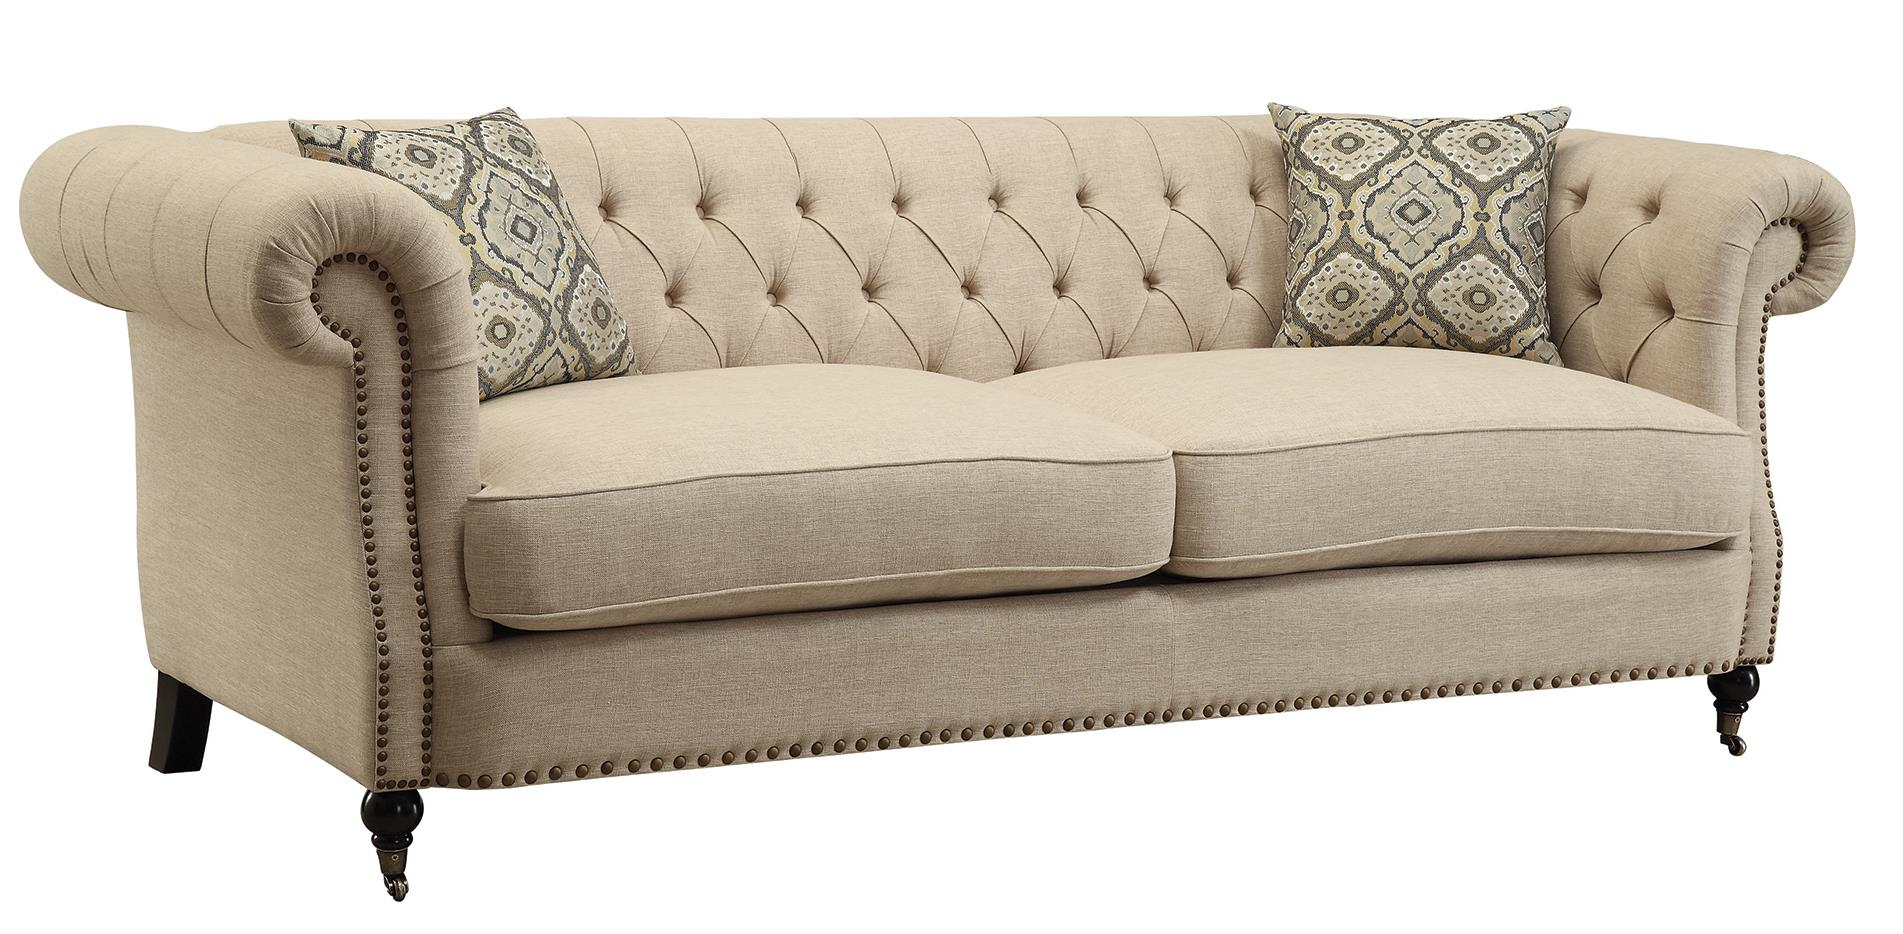 Trivellato Traditional Button Tufted Sofa With Large Rolled Arms And Nailheads Quality